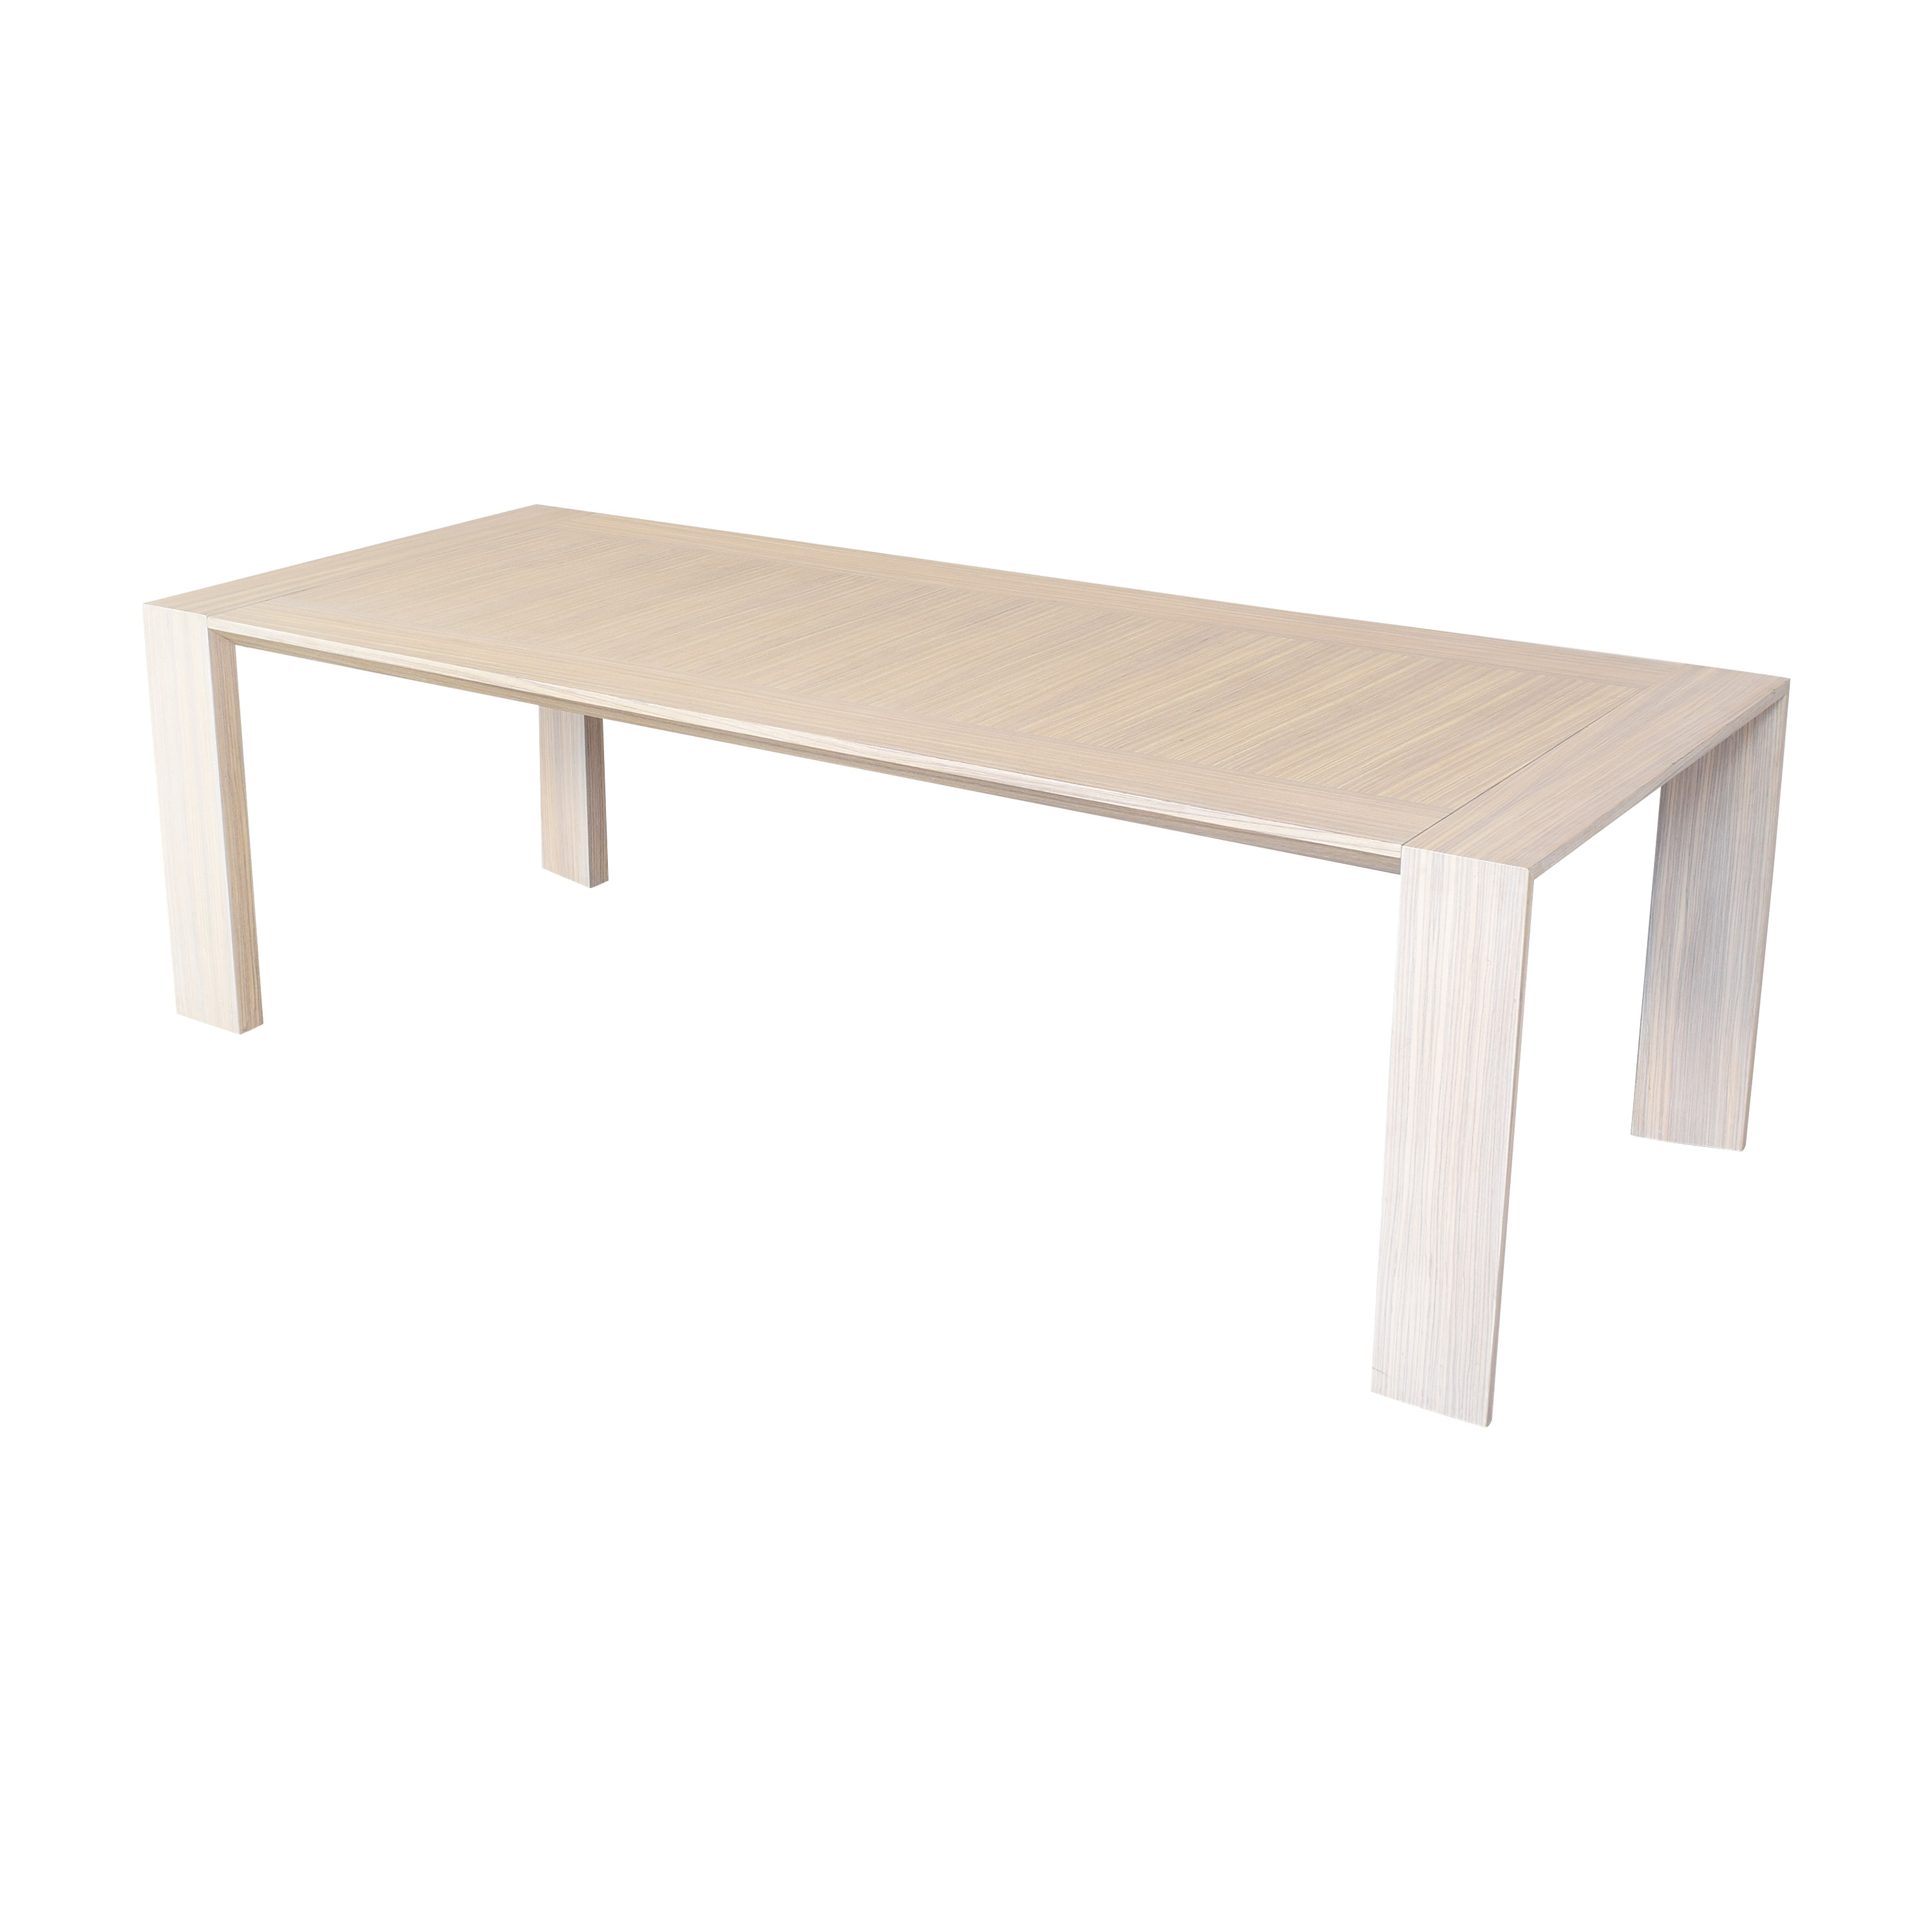 Cite NYC Cite NYC Cecchini Rectangular Dining Table ct